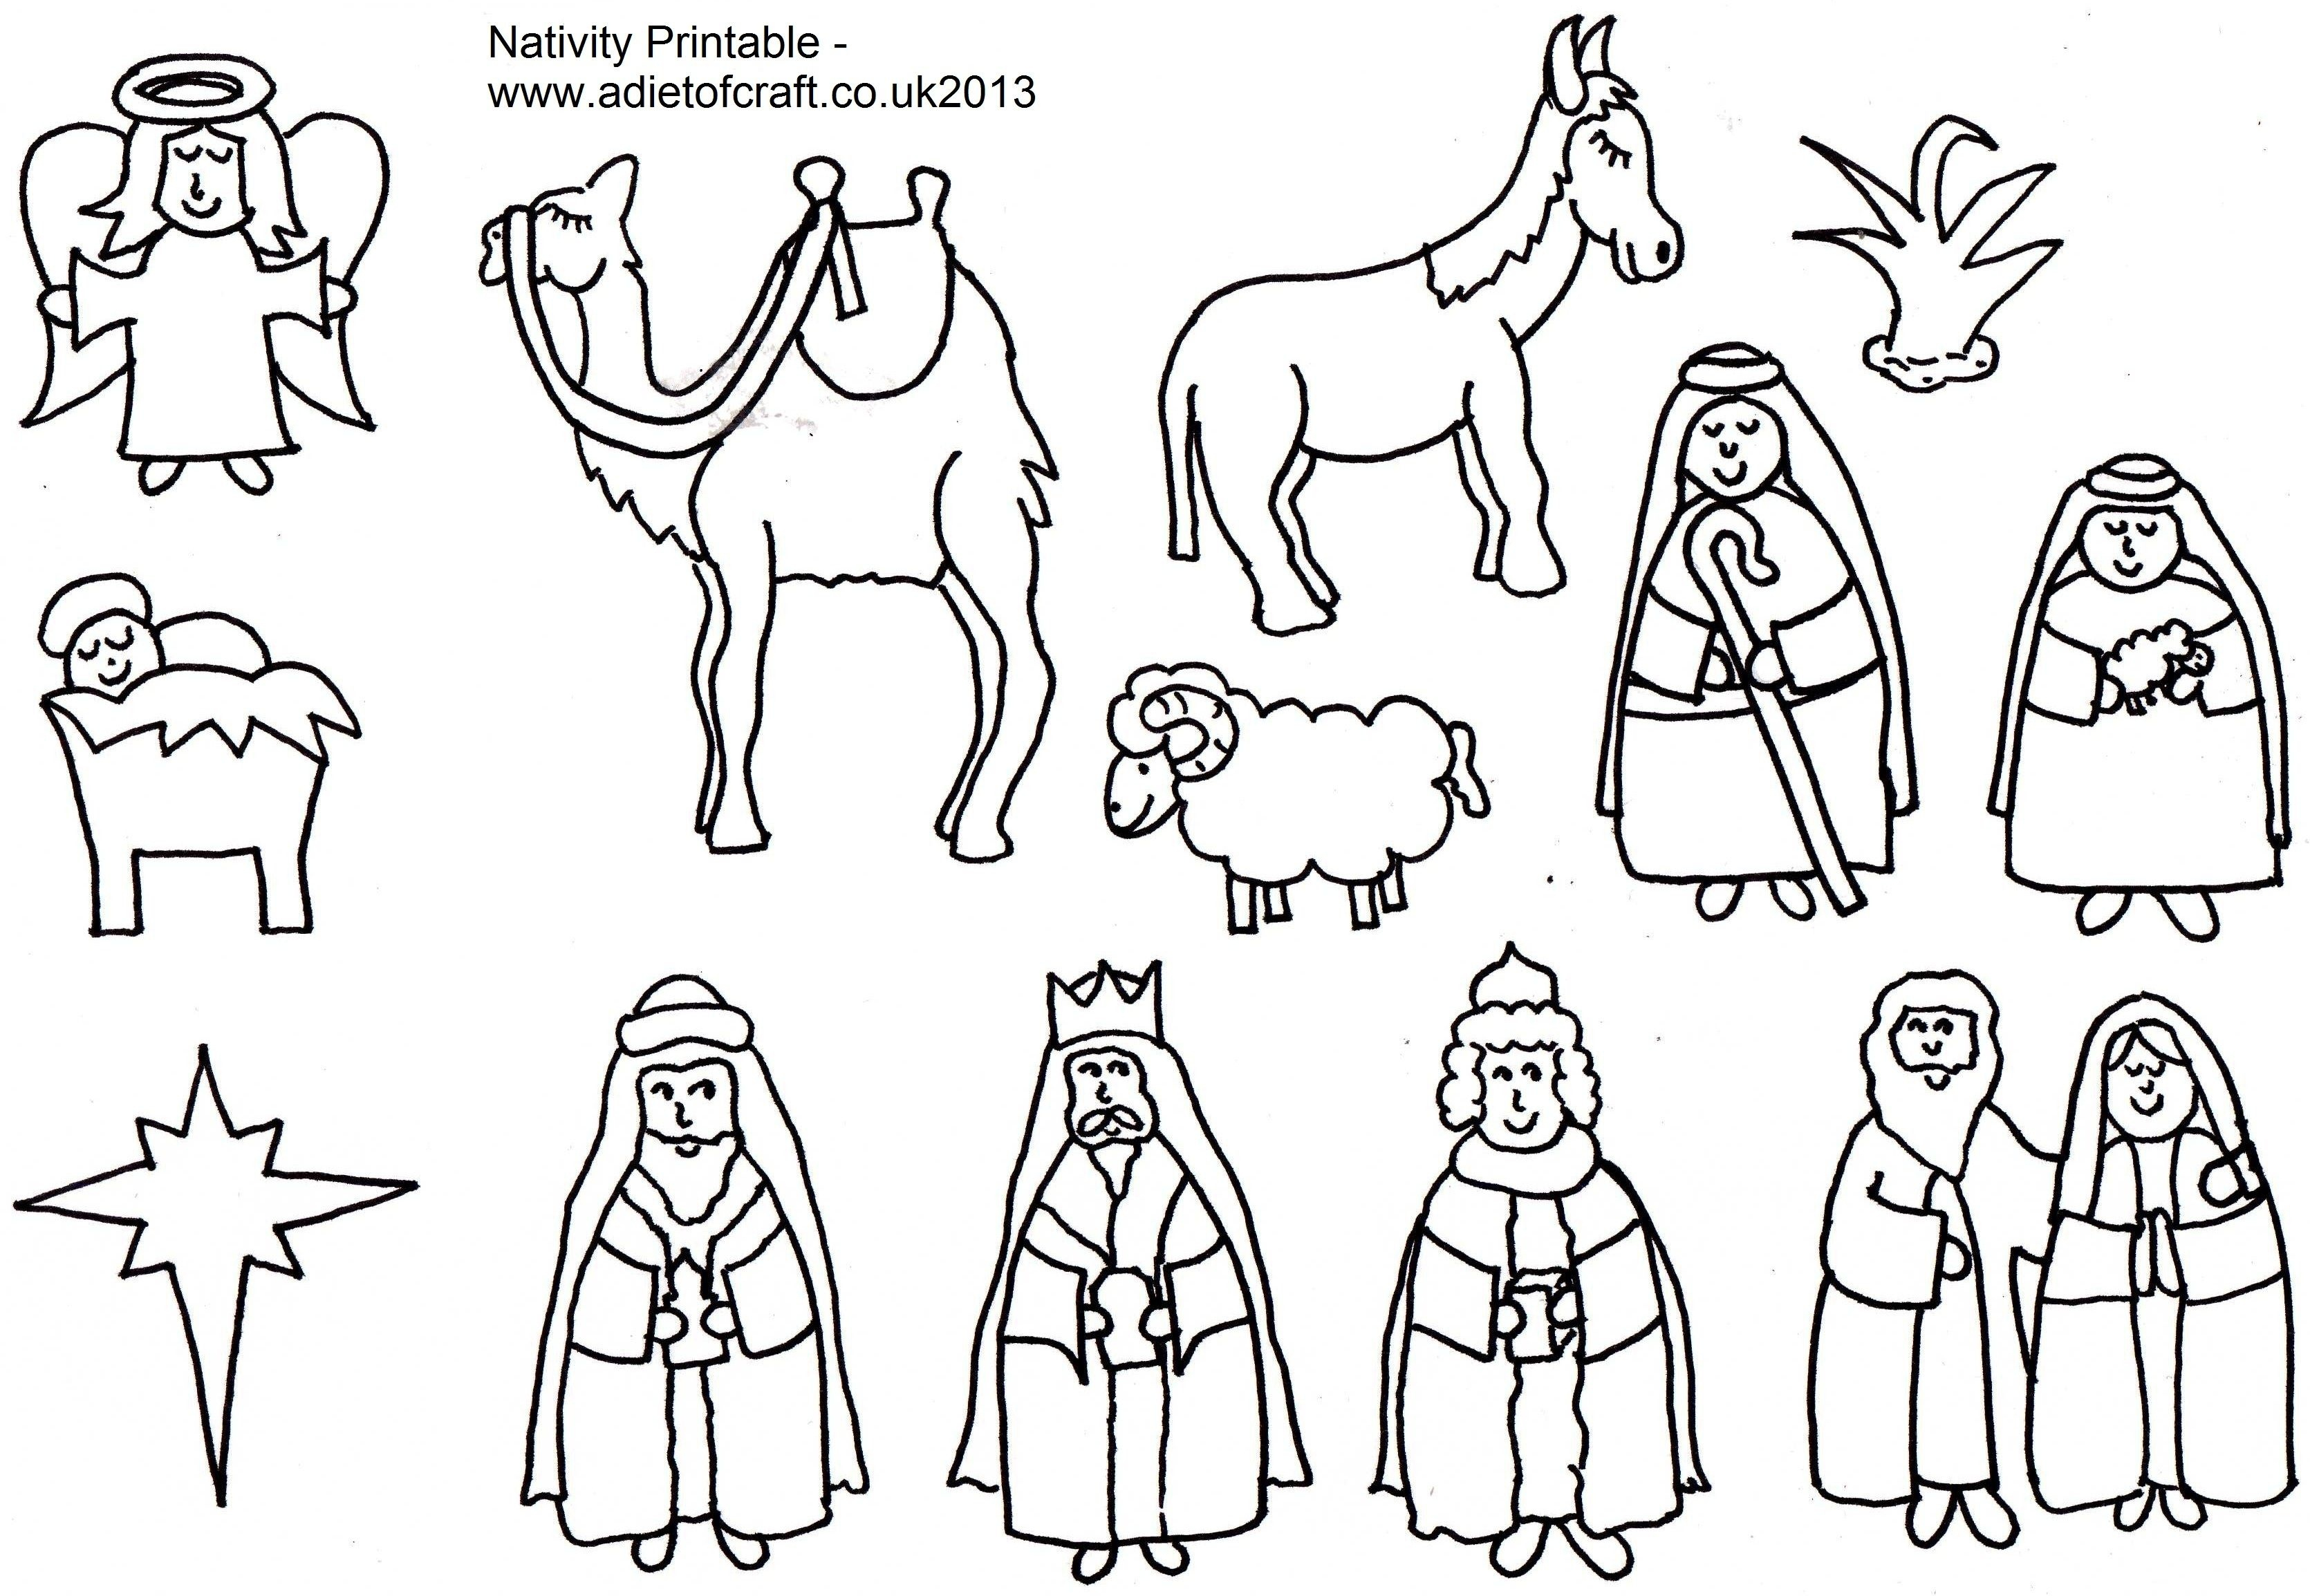 Adult Coloring Pages Of The Nativity Free In Nativity Coloring Pages - Free Printable Nativity Scene Pictures